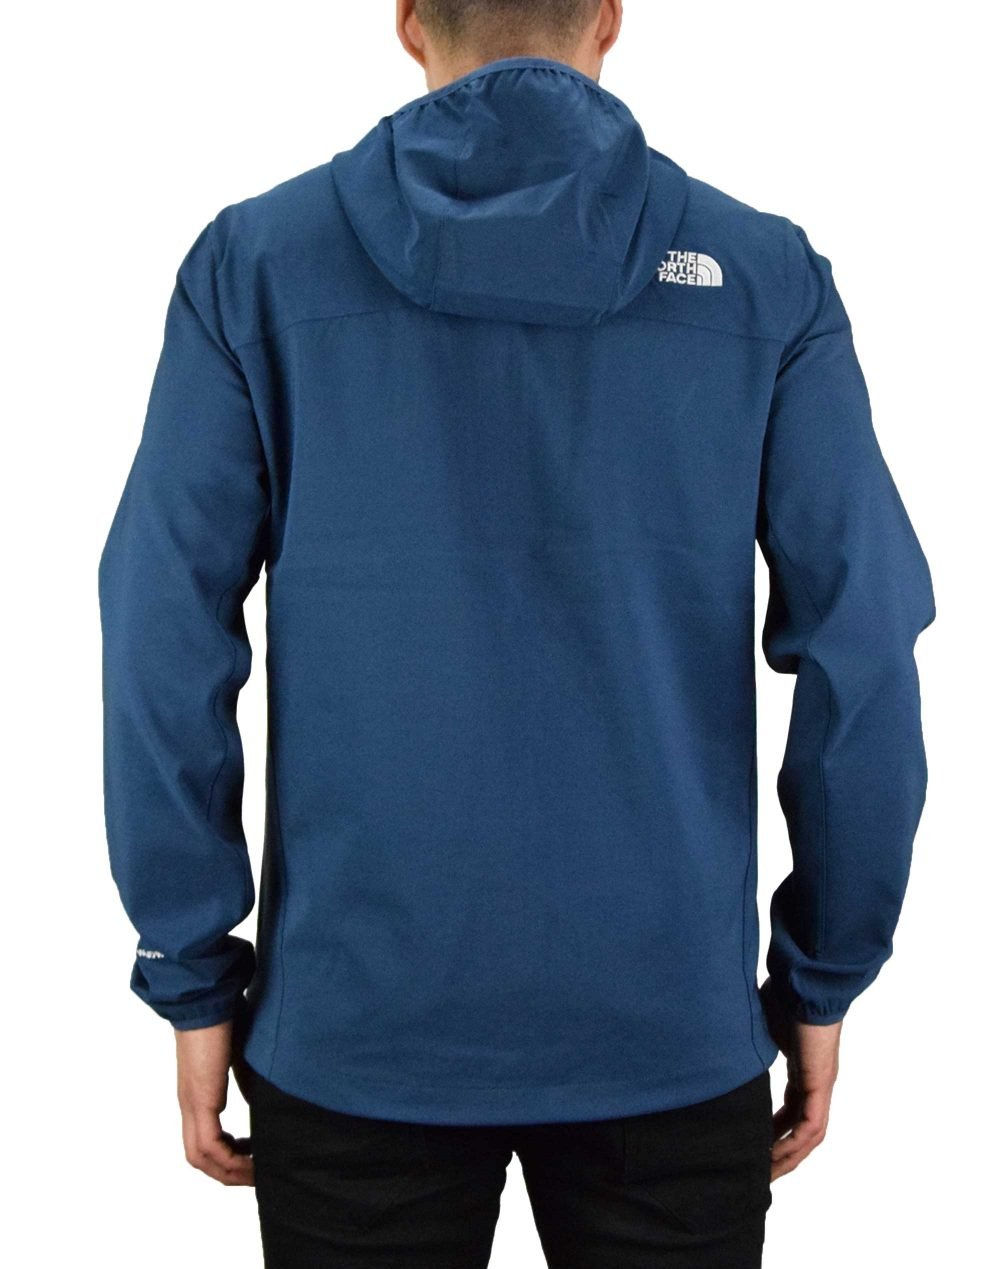 The North Face Nimble Hoodie Jacket (NF0A2XLBN4L1) Blue Wing Teal